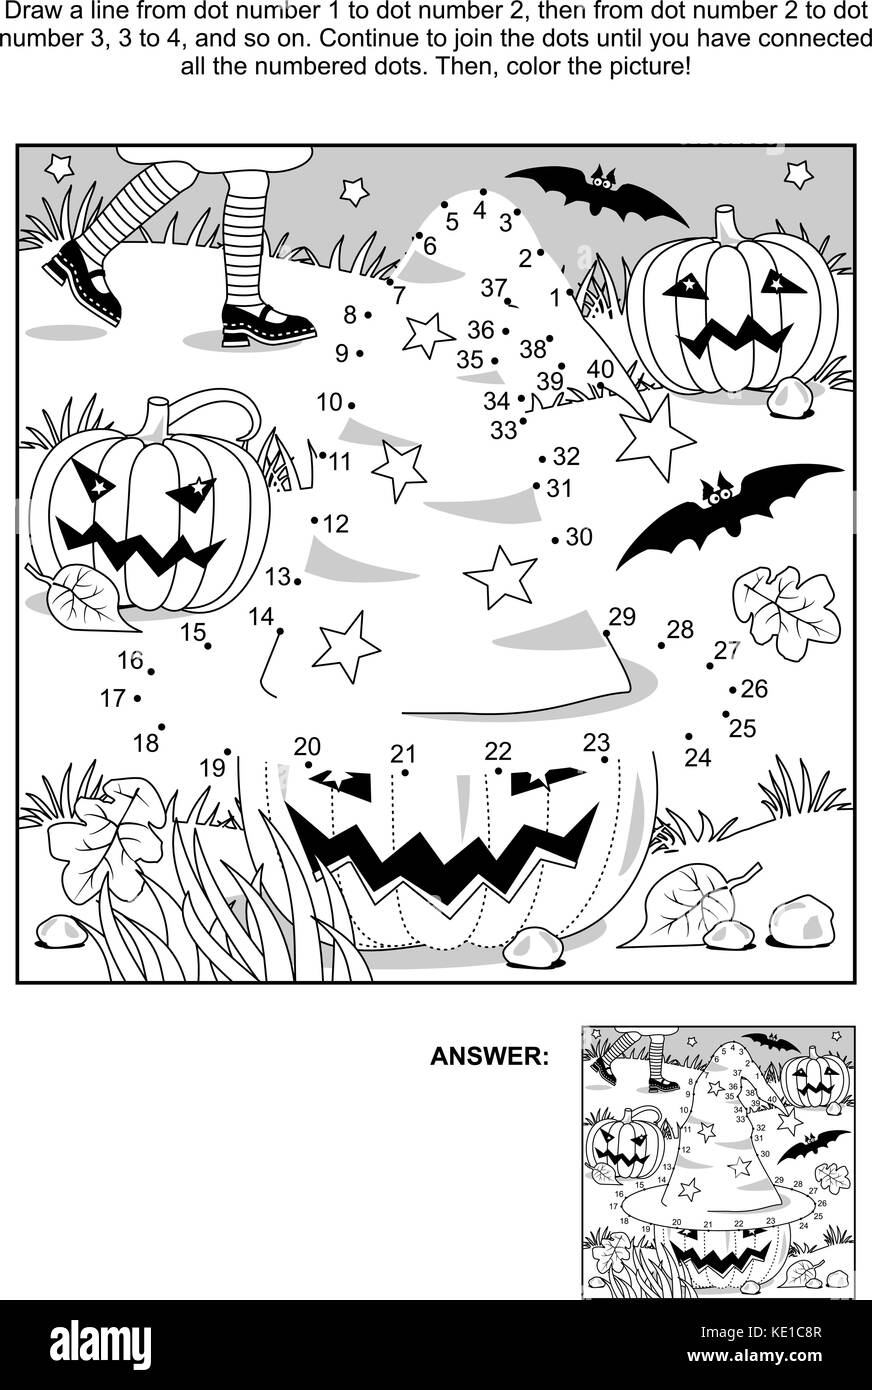 Connect The Dots Picture Puzzle And Coloring Page